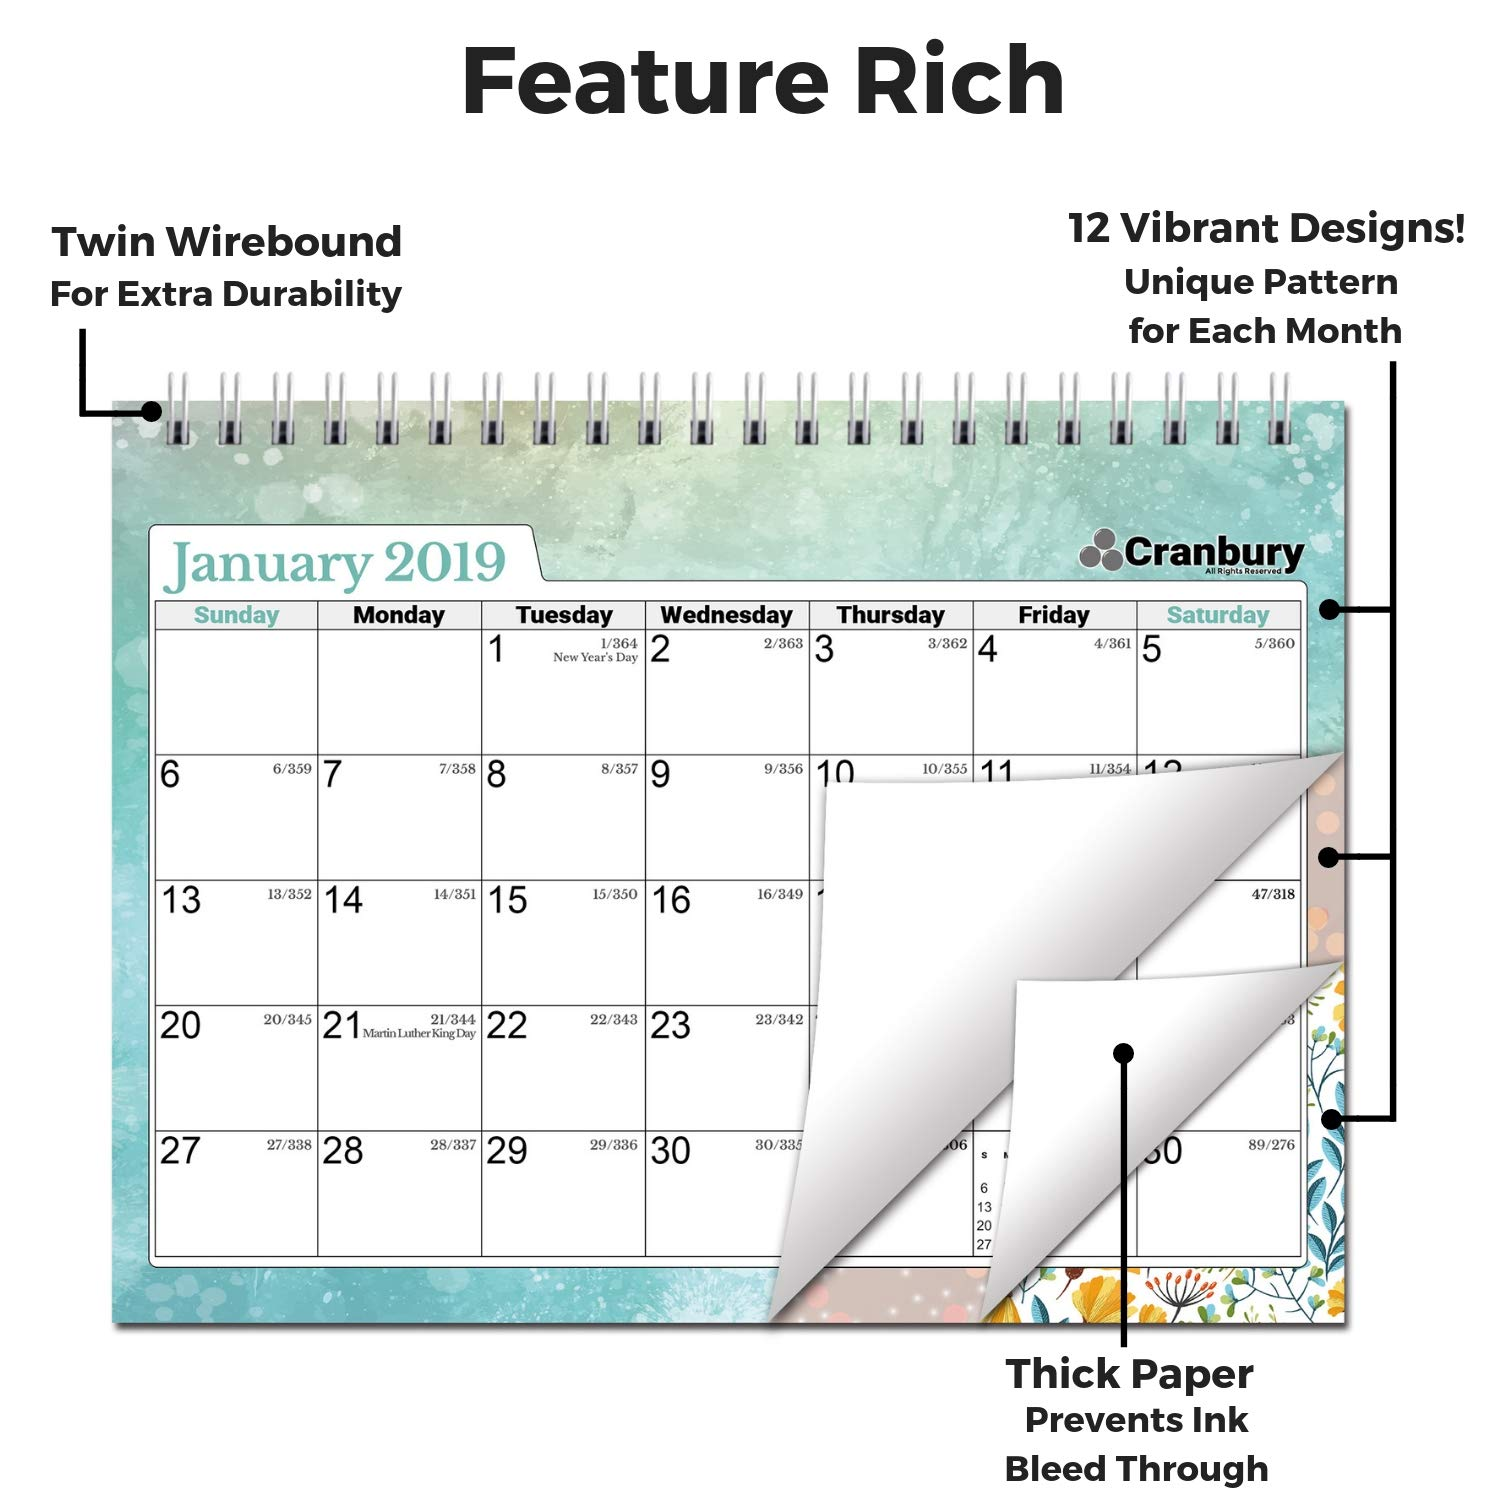 Cranbury Small Desk Calendar 2019 Monthly: Flip Desktop Counter Top Calendars with Bonus Planner Stickers for Family and Office, 8''x6'' (Colorful), Sturdy, USE Now Through December 2019 by Cranbury (Image #3)